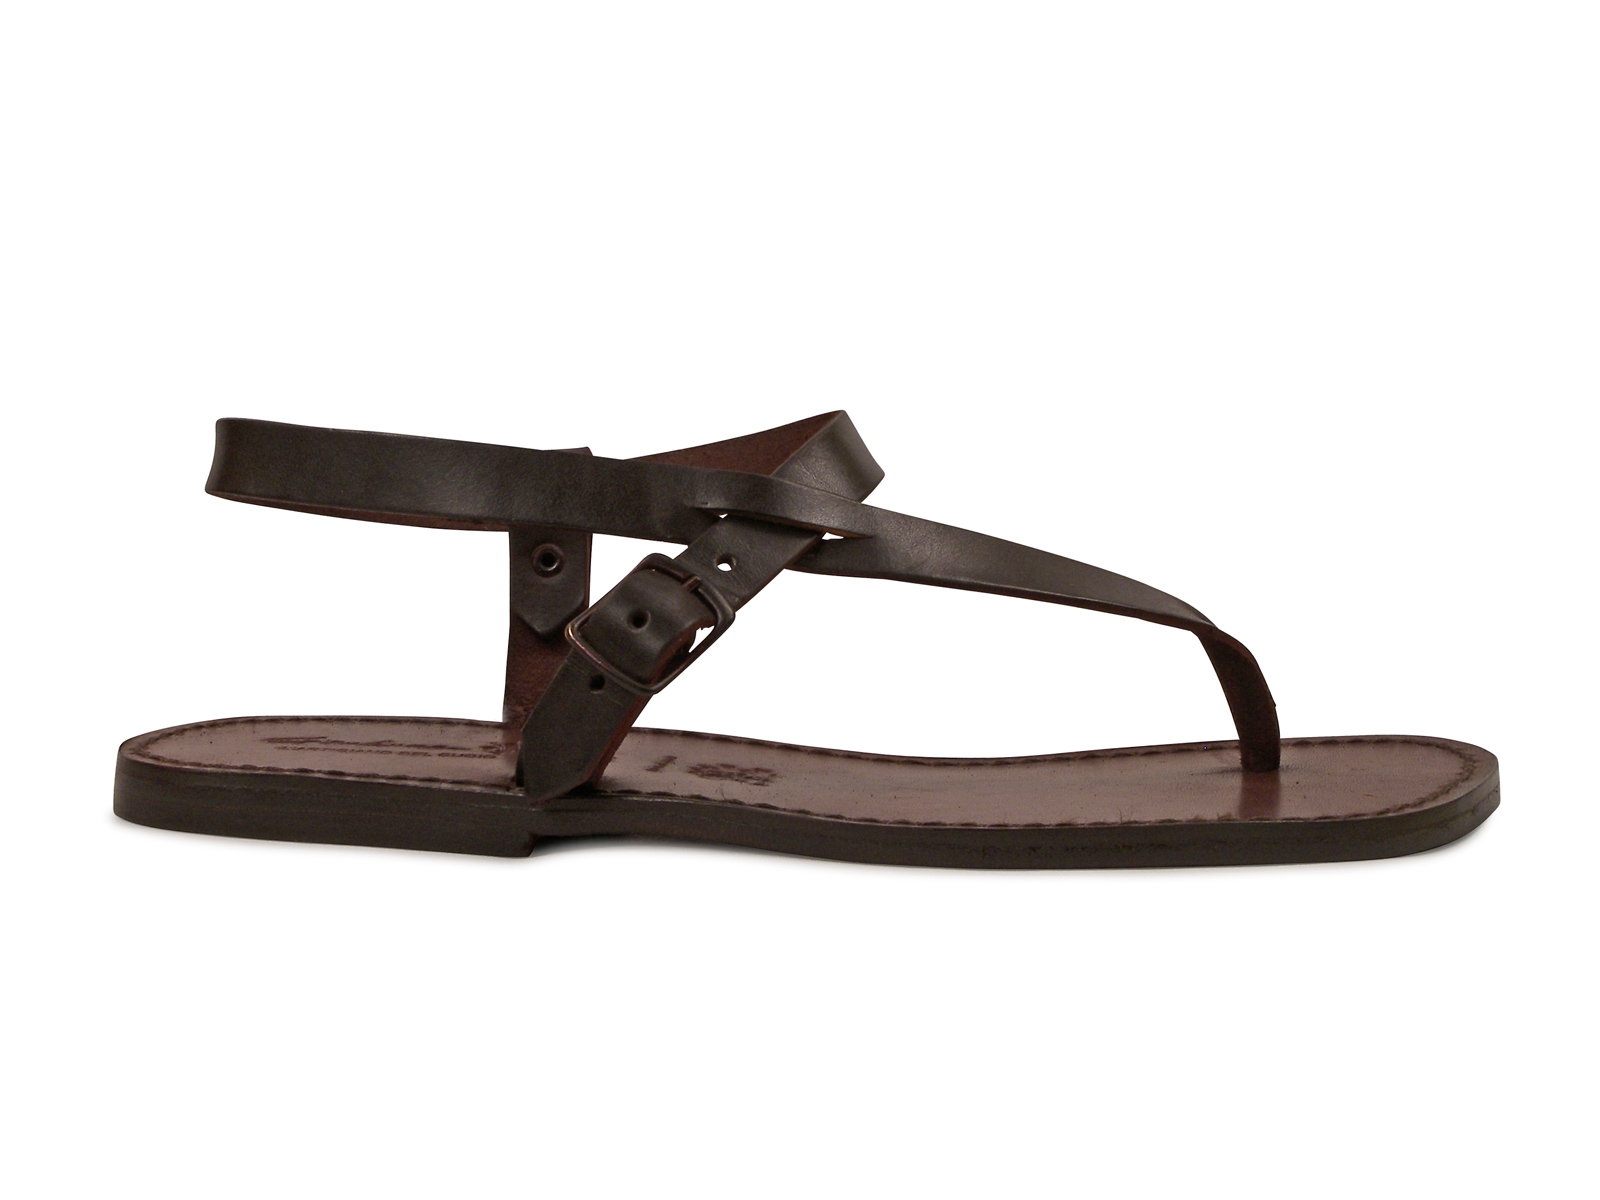 08ee9ee44ff973 Handmade brown leather ankle strap thong sandals for men